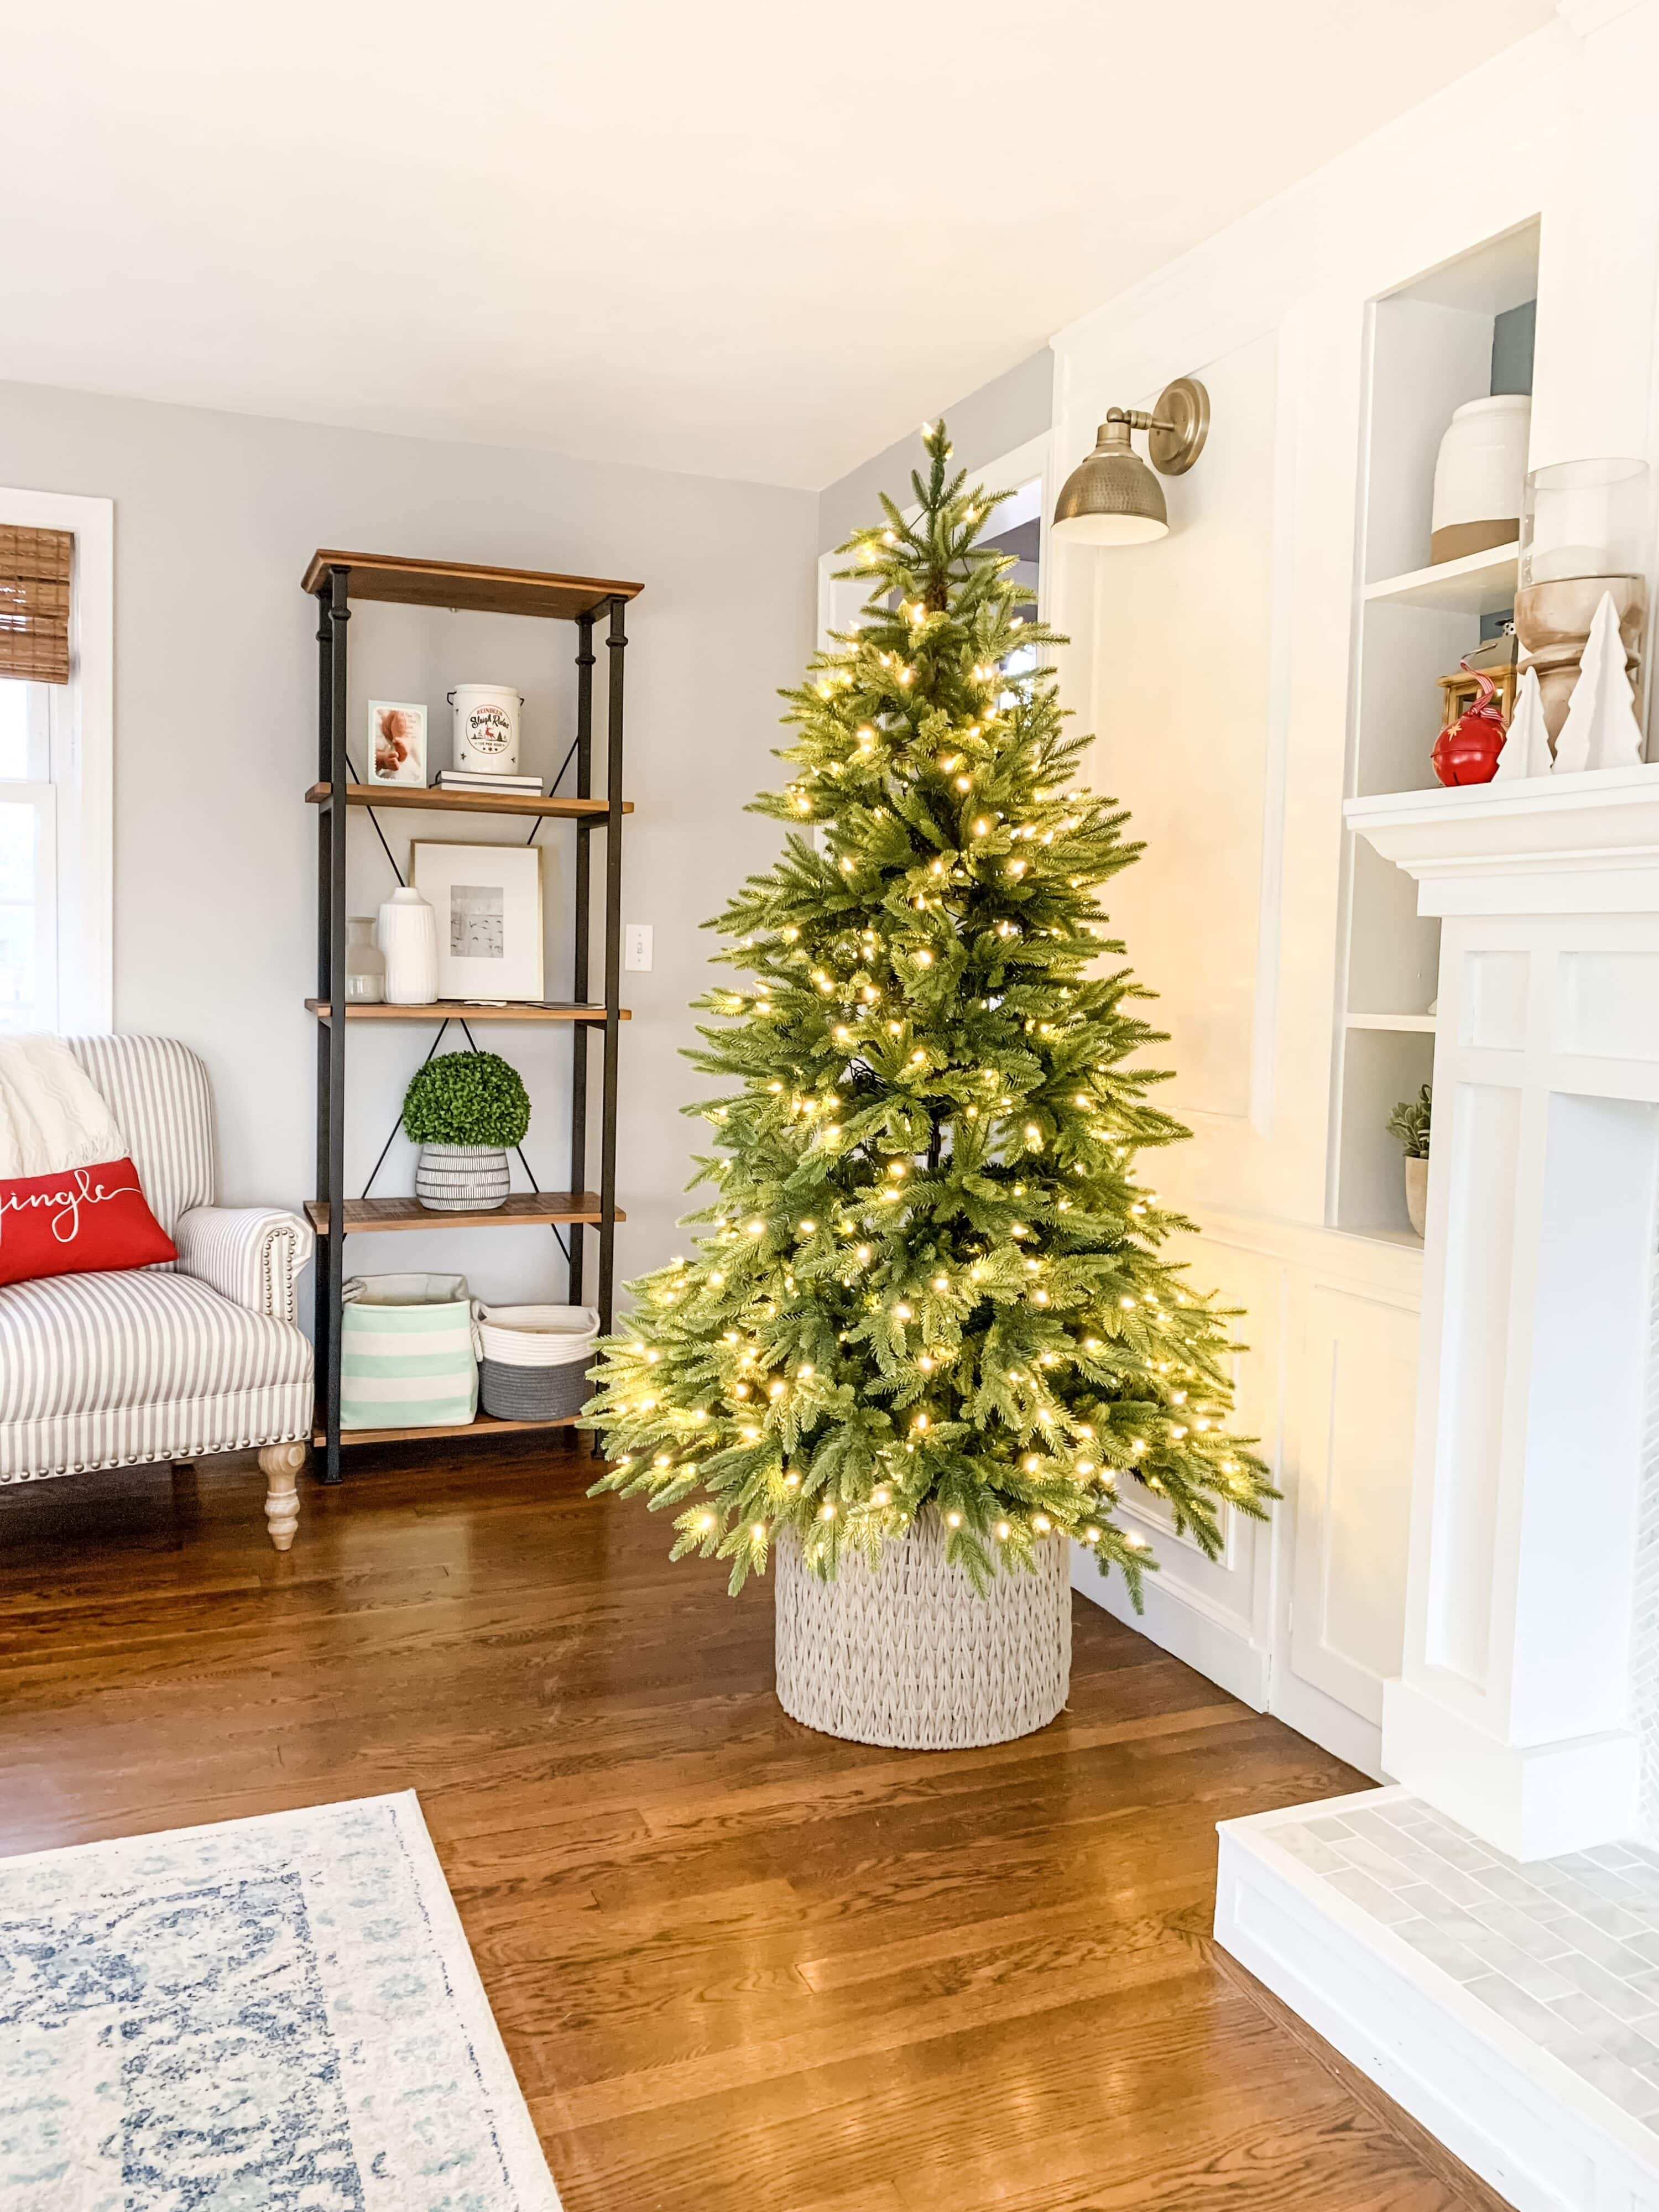 Christmas tree with no decorations on it